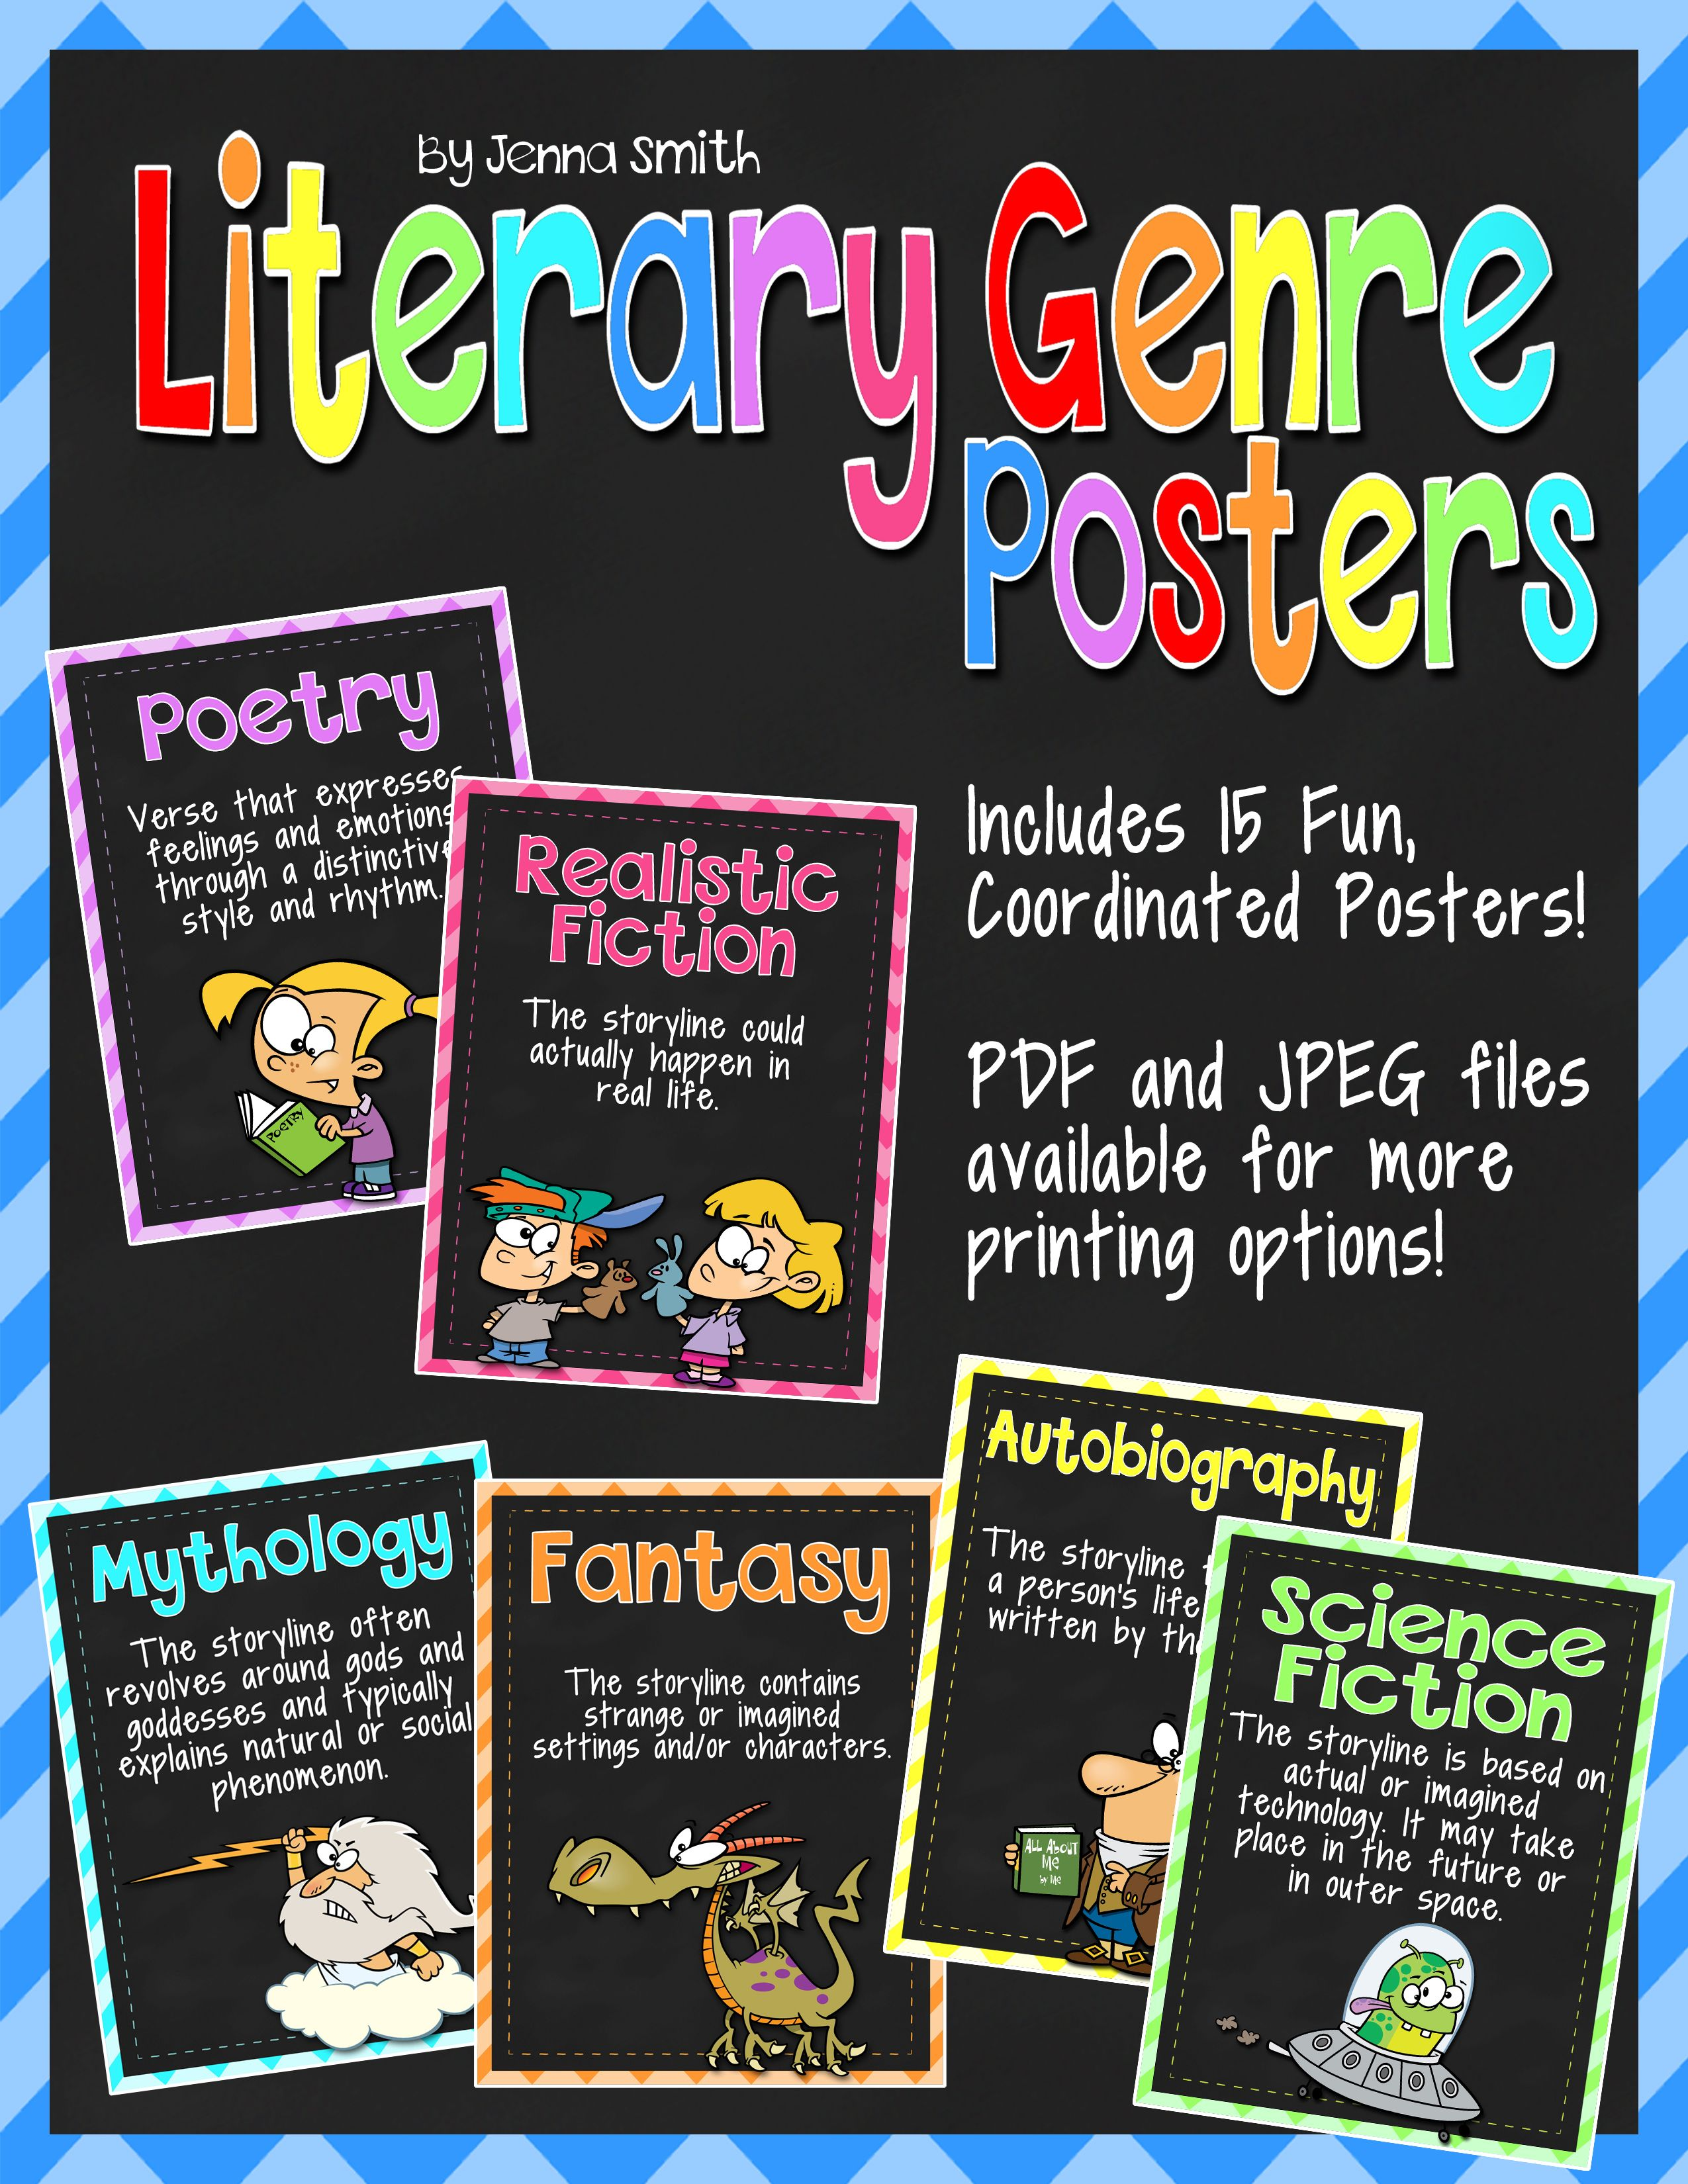 Literary genre posters genre posters literary genre and